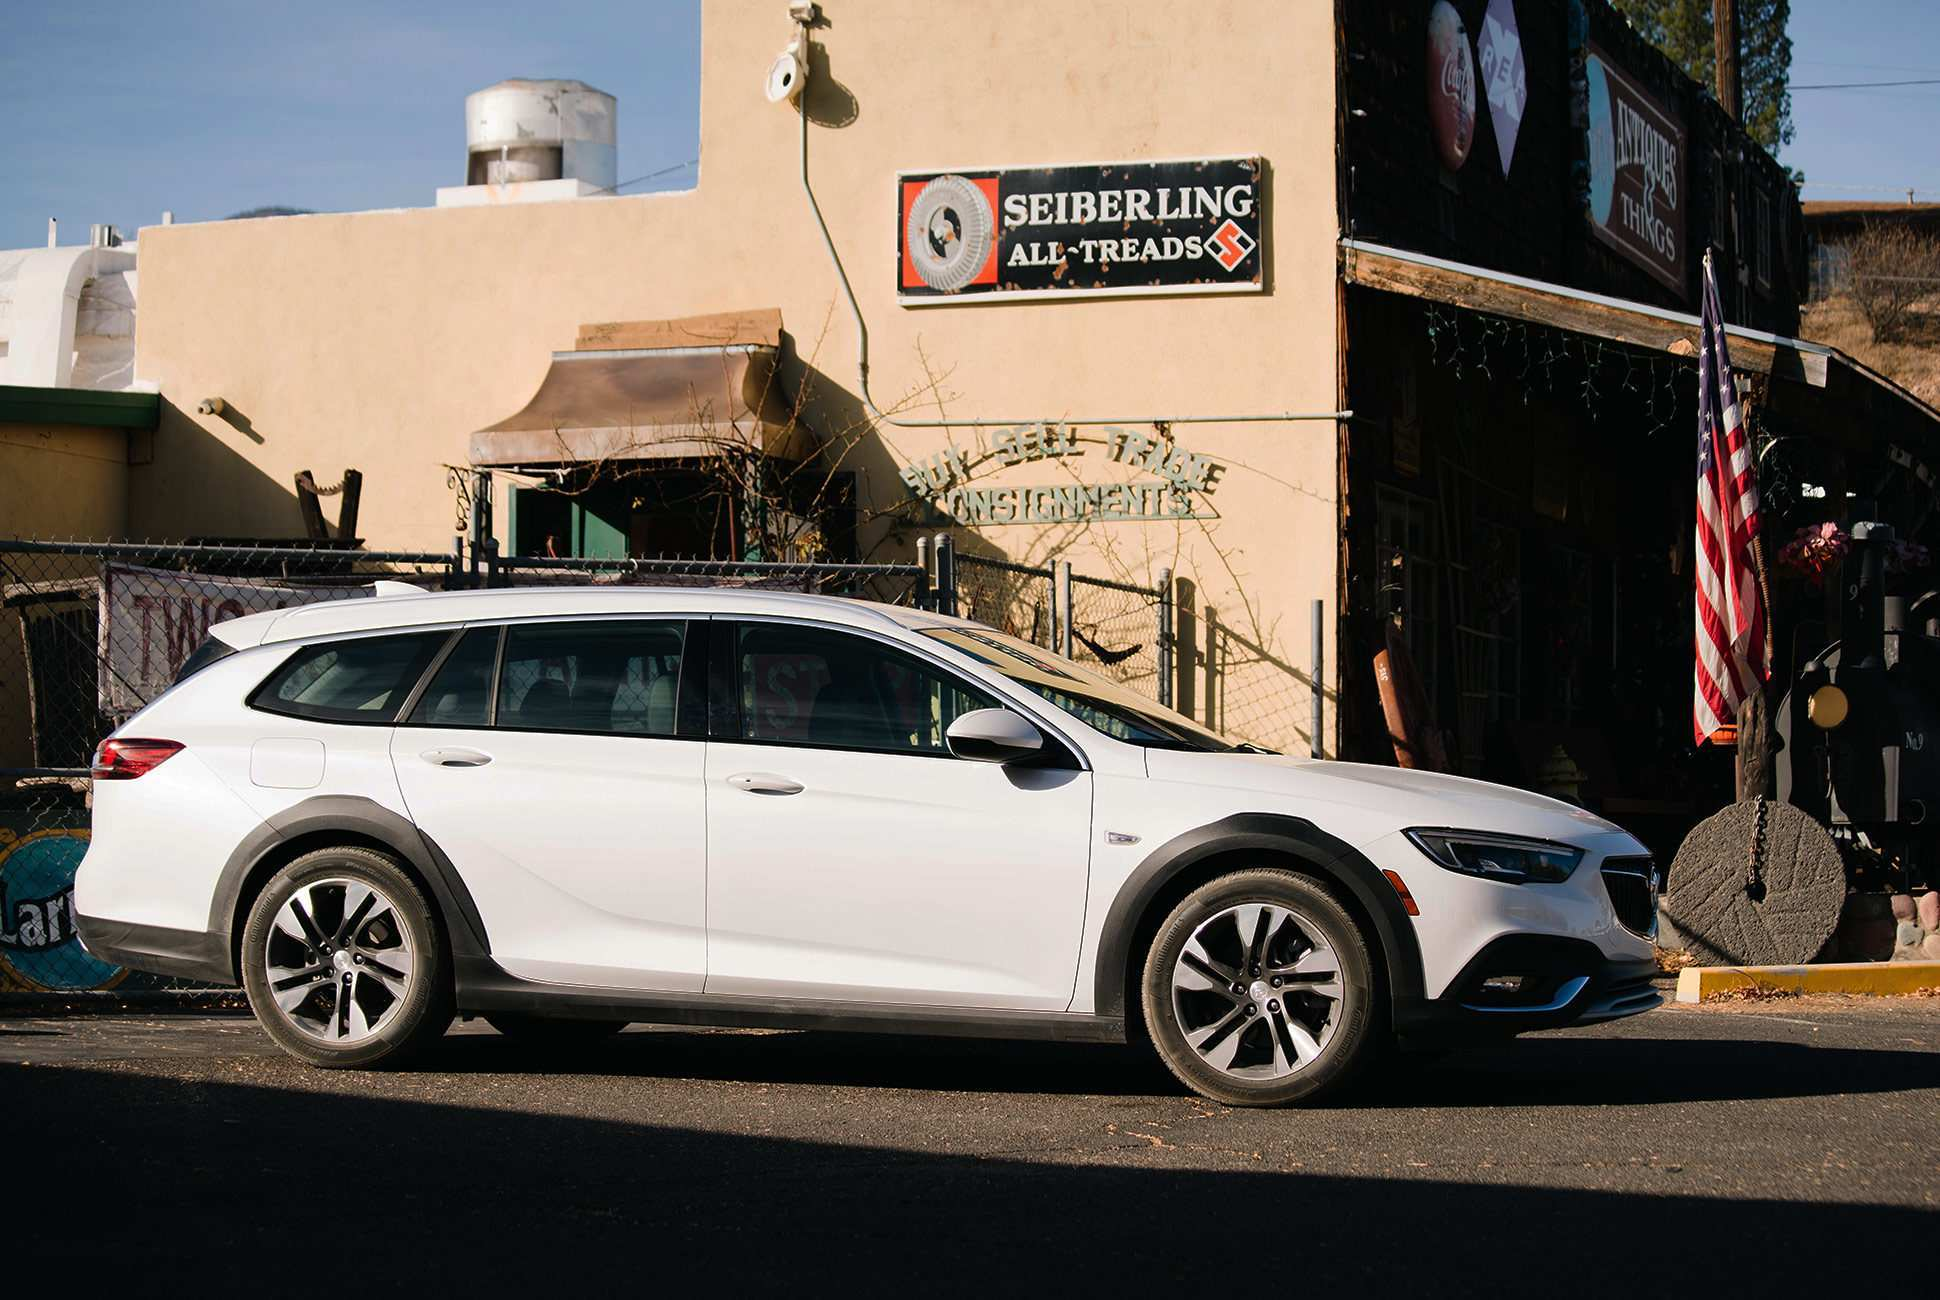 65 Gallery of 2020 Buick Regal Station Wagon Price and Review for 2020 Buick Regal Station Wagon